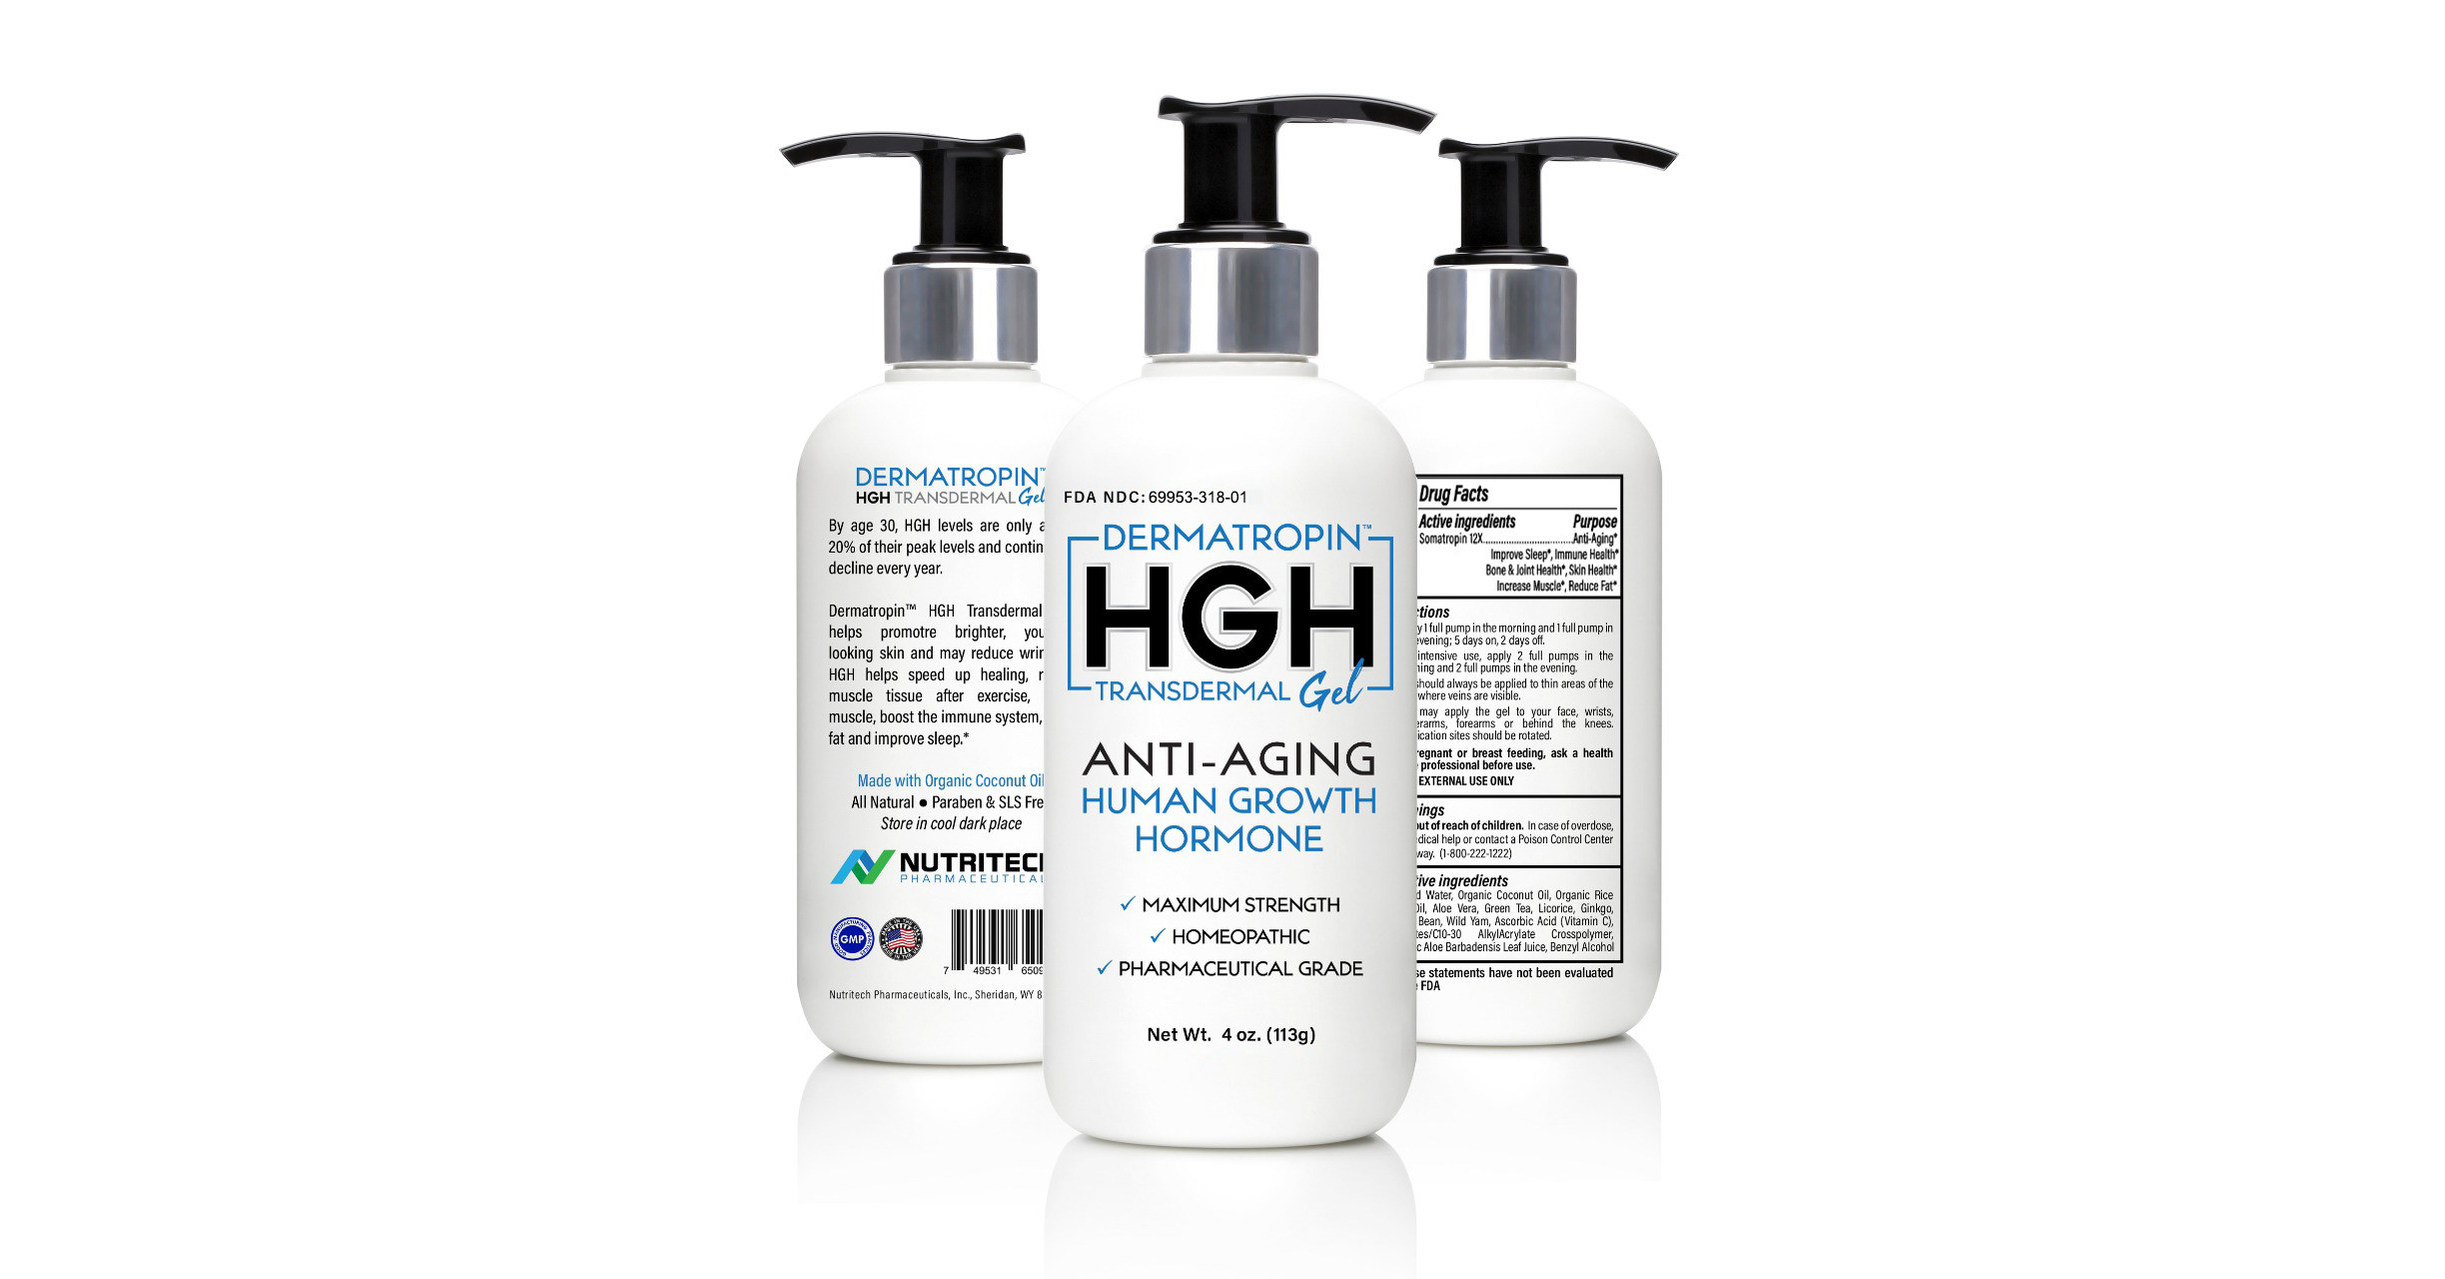 Dermatropin Hgh Now Available Without A Prescription Directly To Consumers